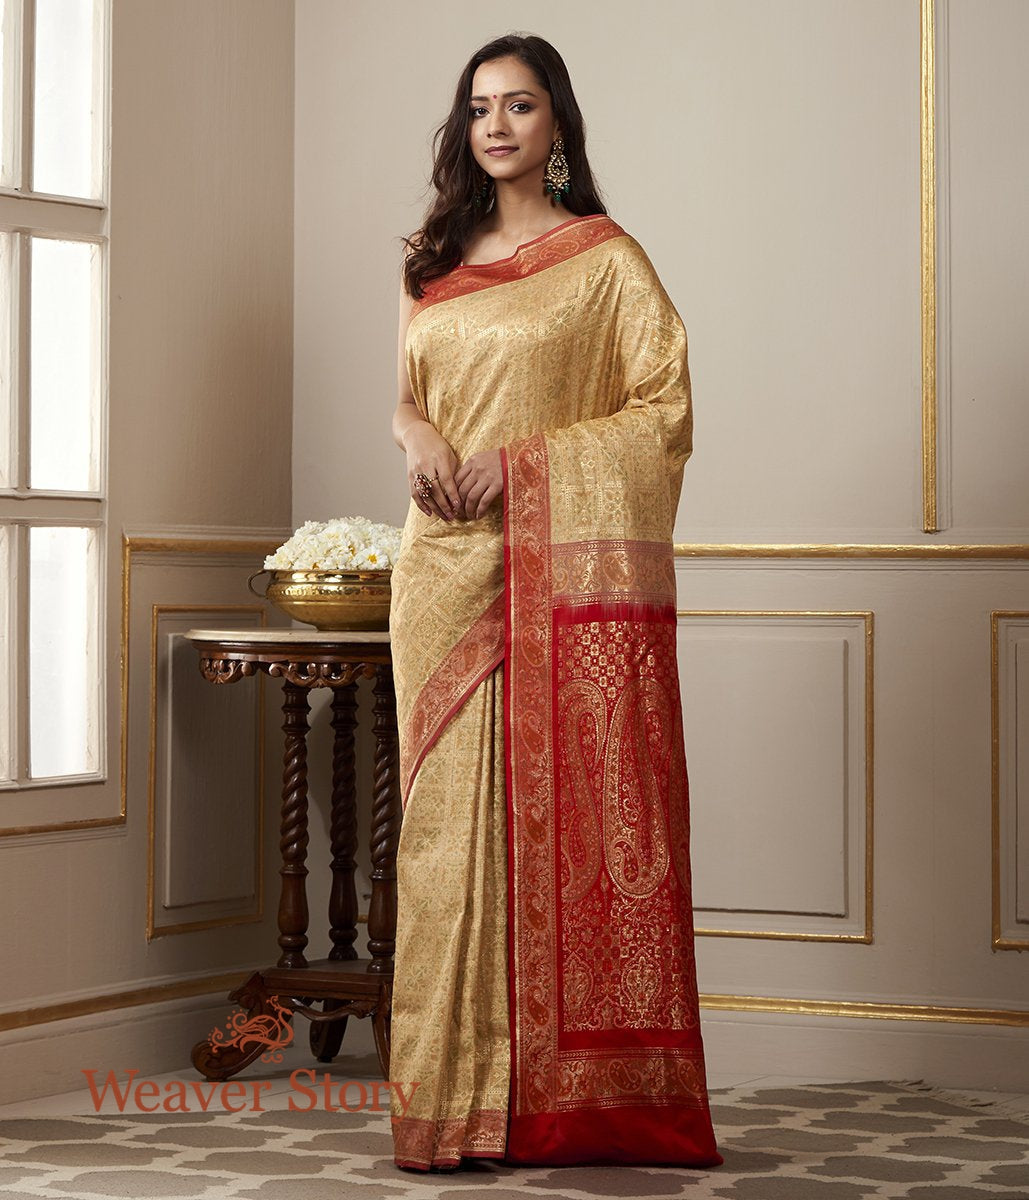 Handwoven Beige and Red Katan Silk Gharchola Saree